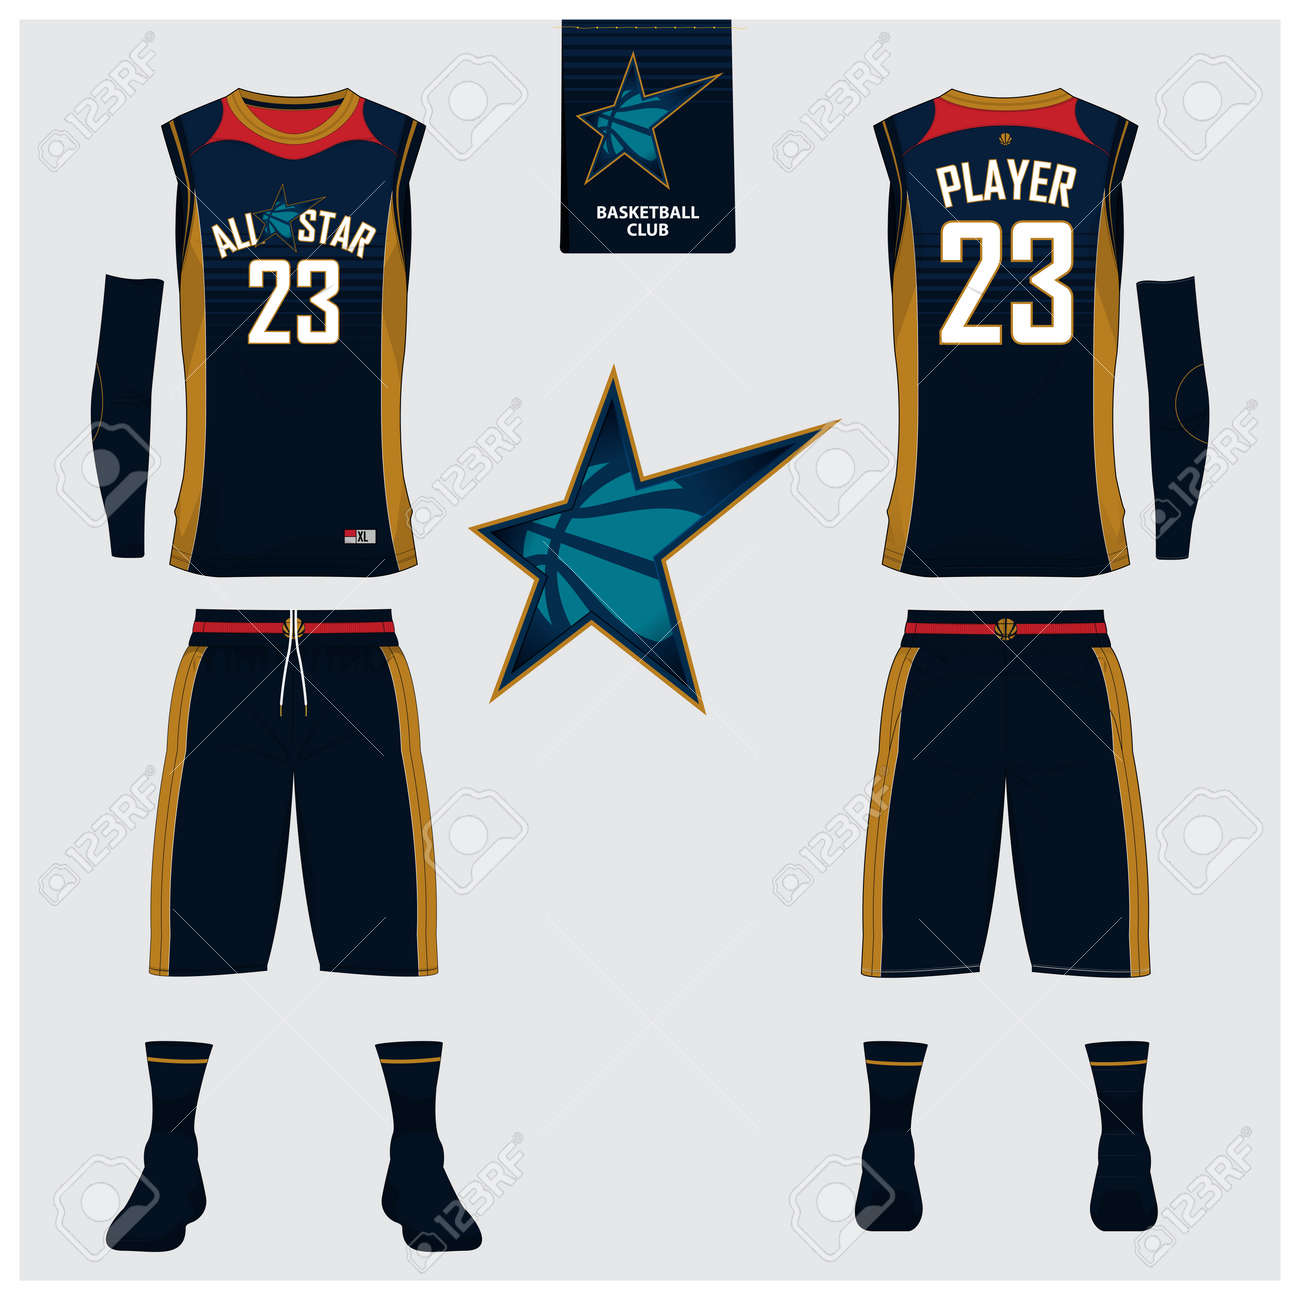 Basketball Uniform Or Jersey, Shorts, Socks Template For Basketball ...